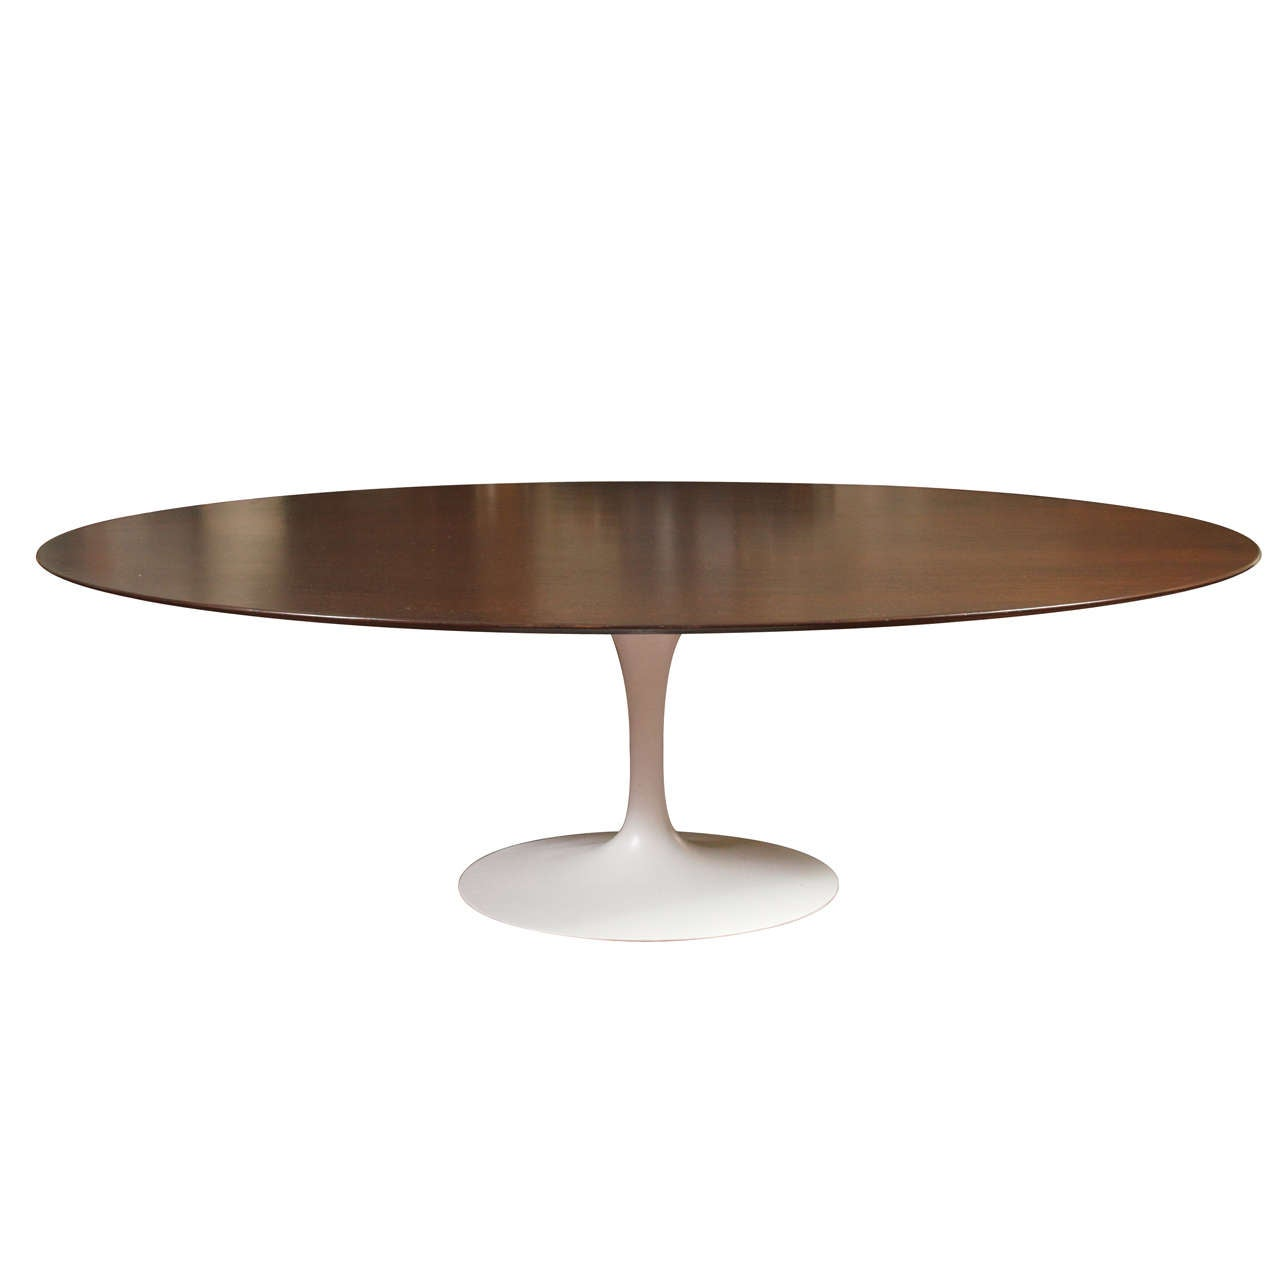 Knoll associates eero saarinen walnut oval dining table at for Knoll and associates